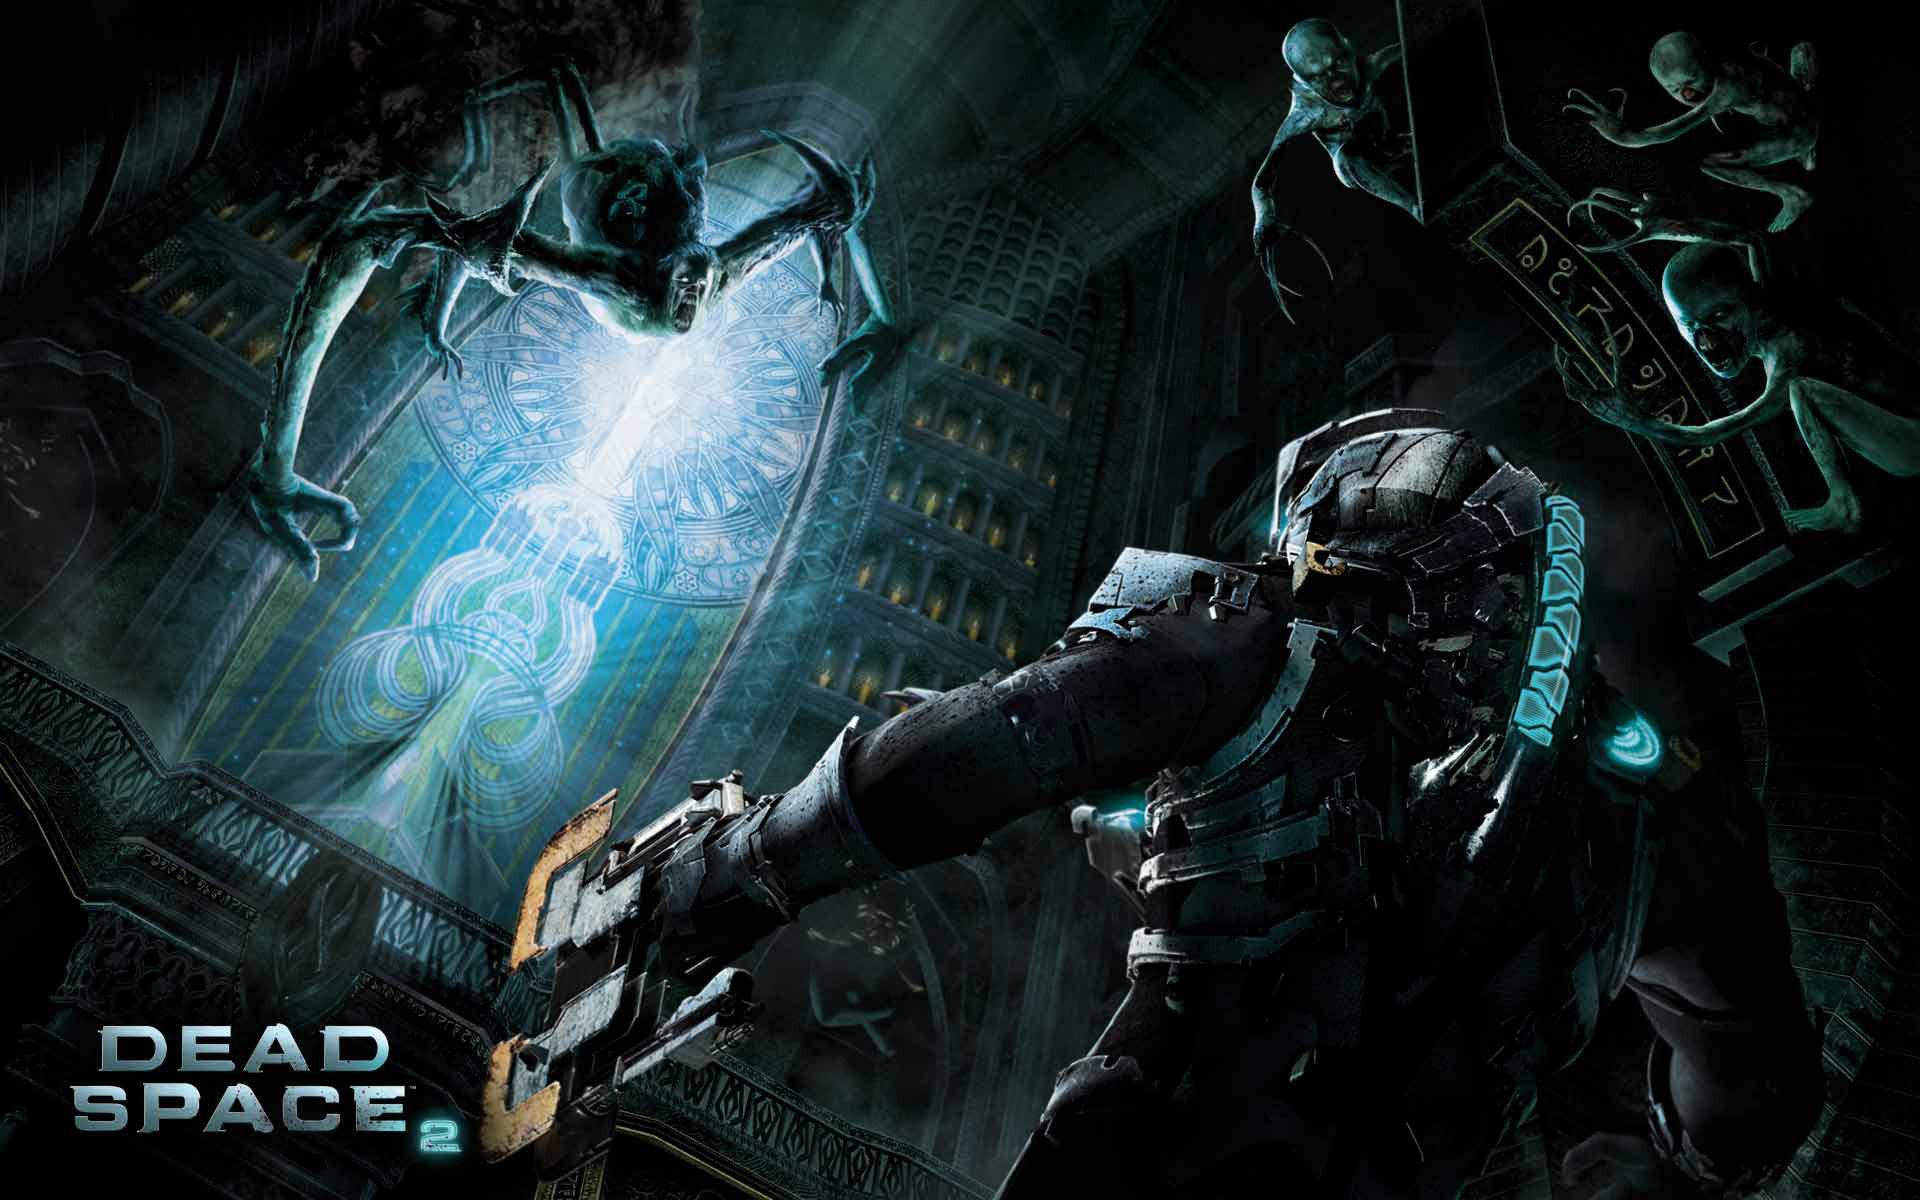 This Dead Space Theme for Windows 7 theme pack contains 16 HD Dead Space  Wallpapers